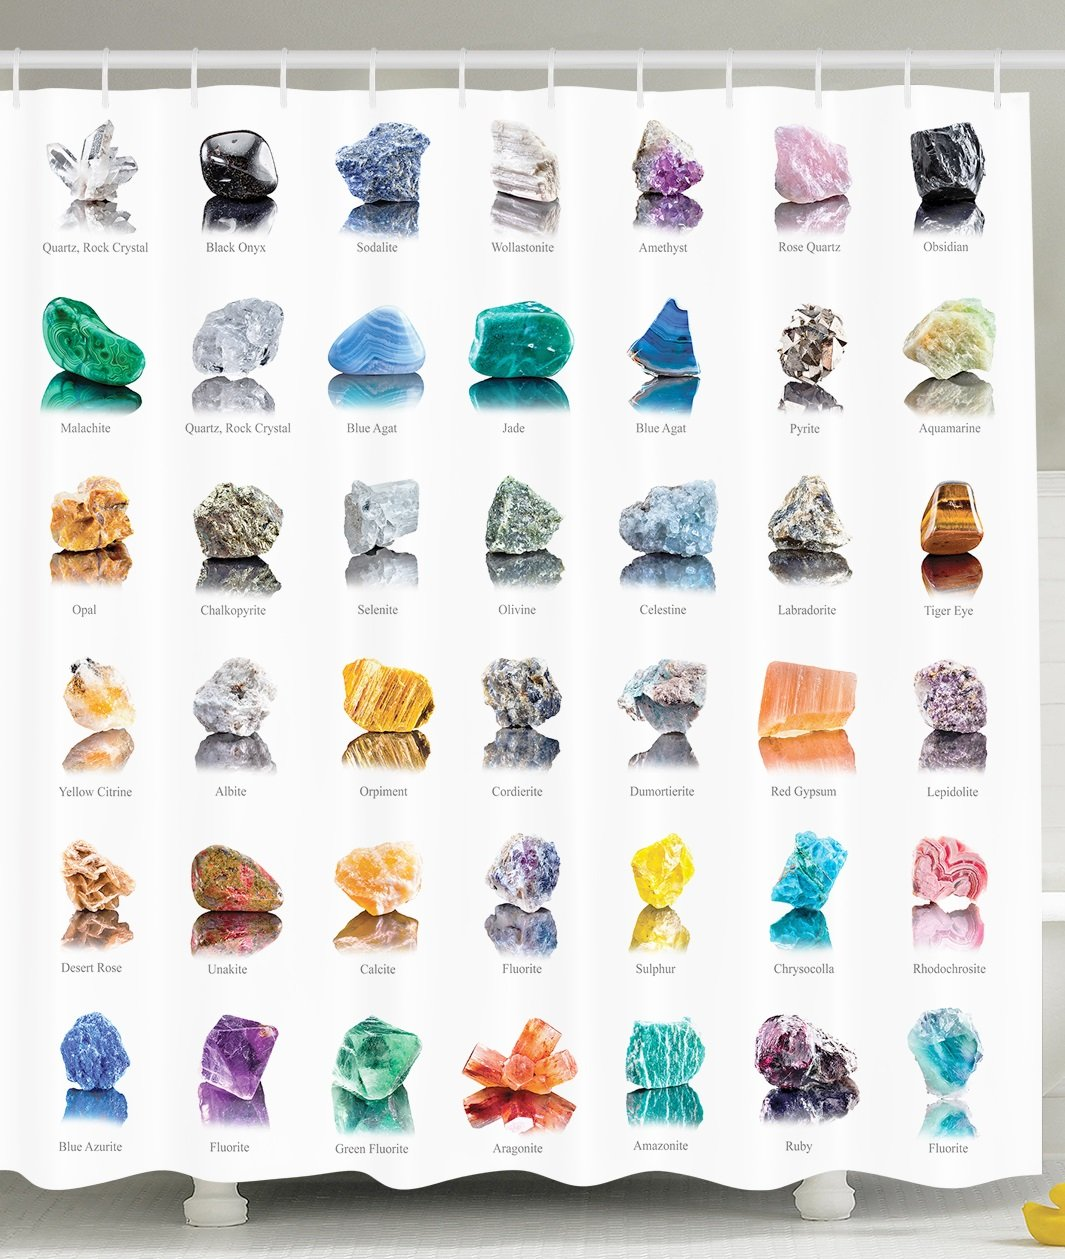 Amazon.com: Rocks Gemstones with Names Semi Precious Stones Magic ...